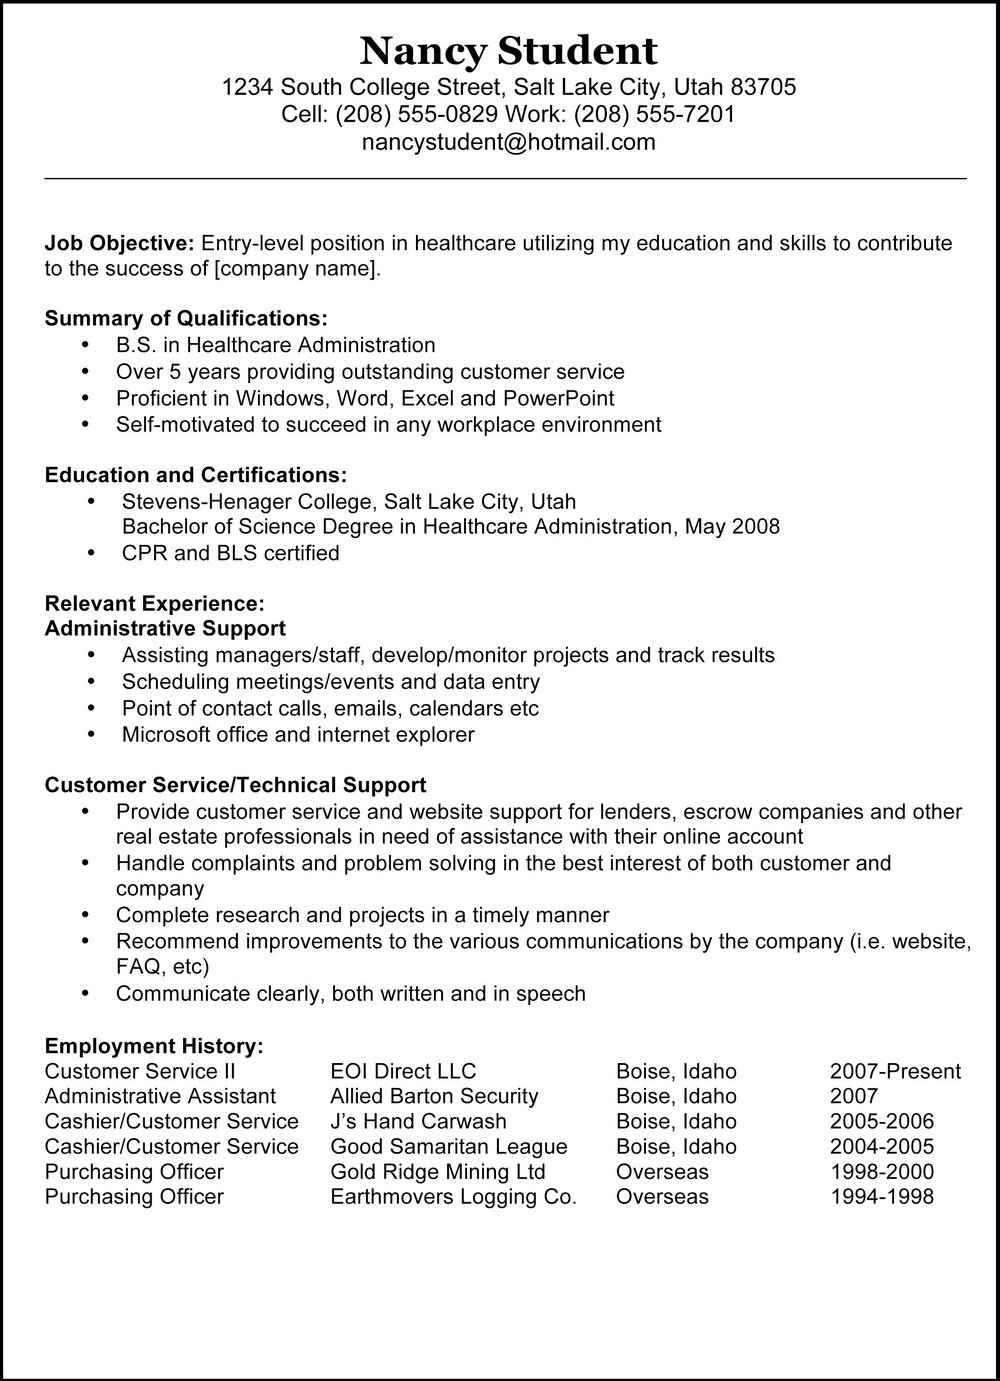 Free Resume Writing Services For Veterans 5 Best Military Resume Writing Services 2020